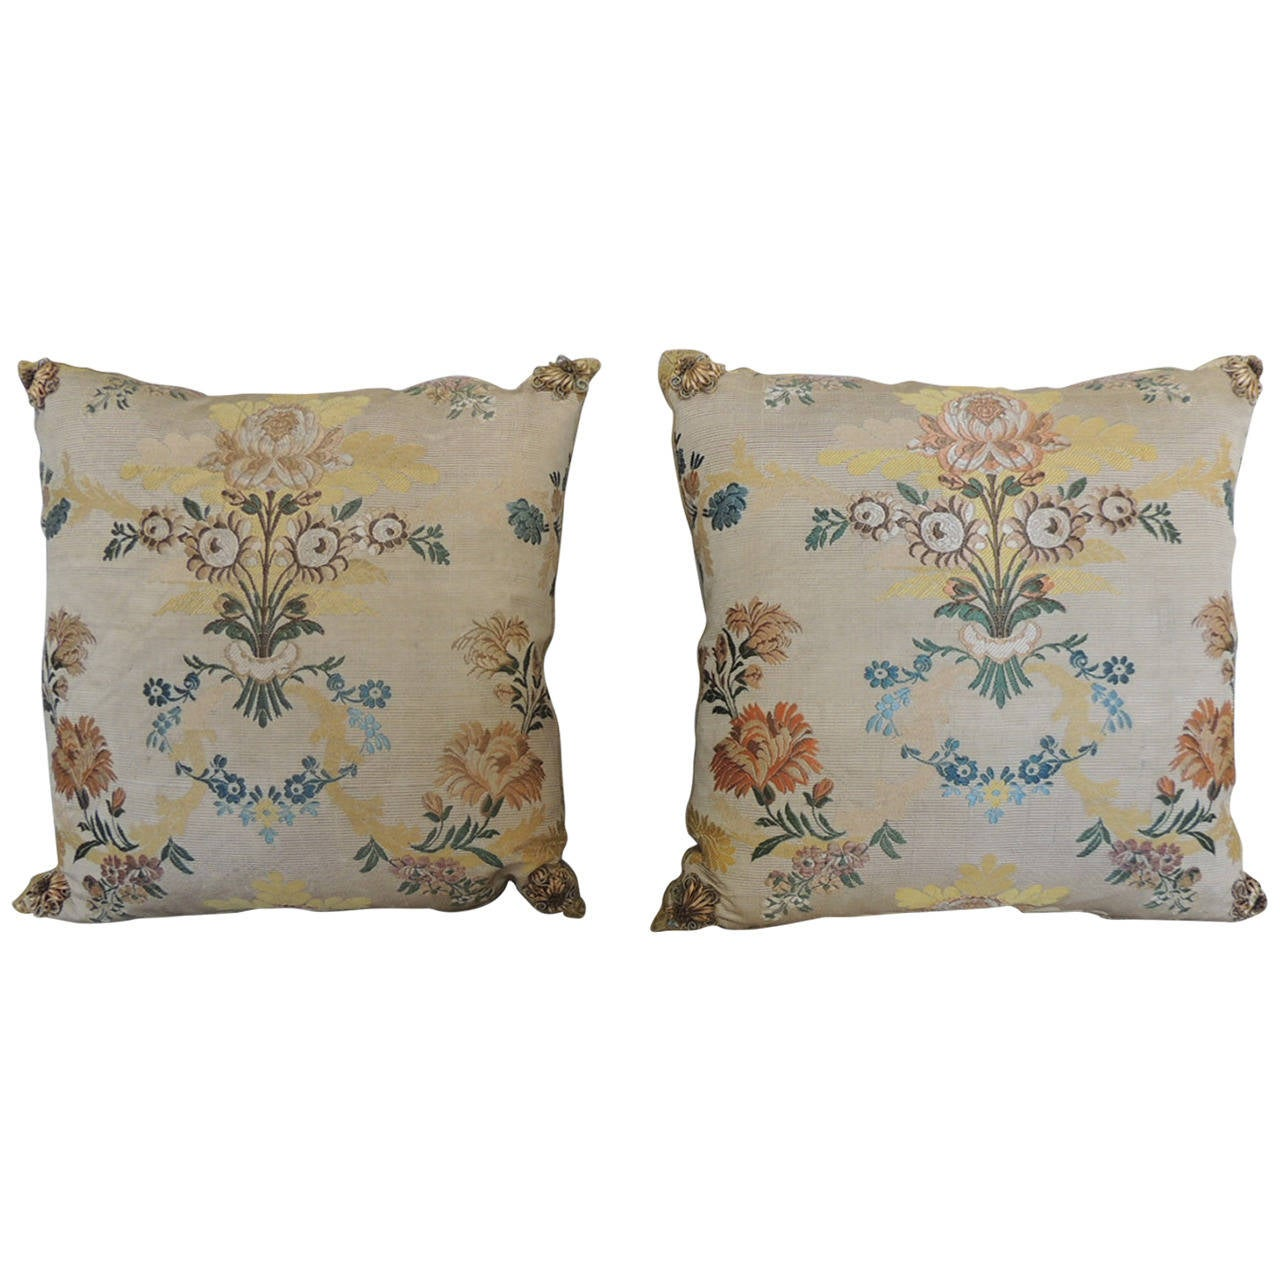 Vintage Decorative Pillow : Pair of Antique Silk Brocade Floral Blue Decorative Pillows For Sale at 1stdibs